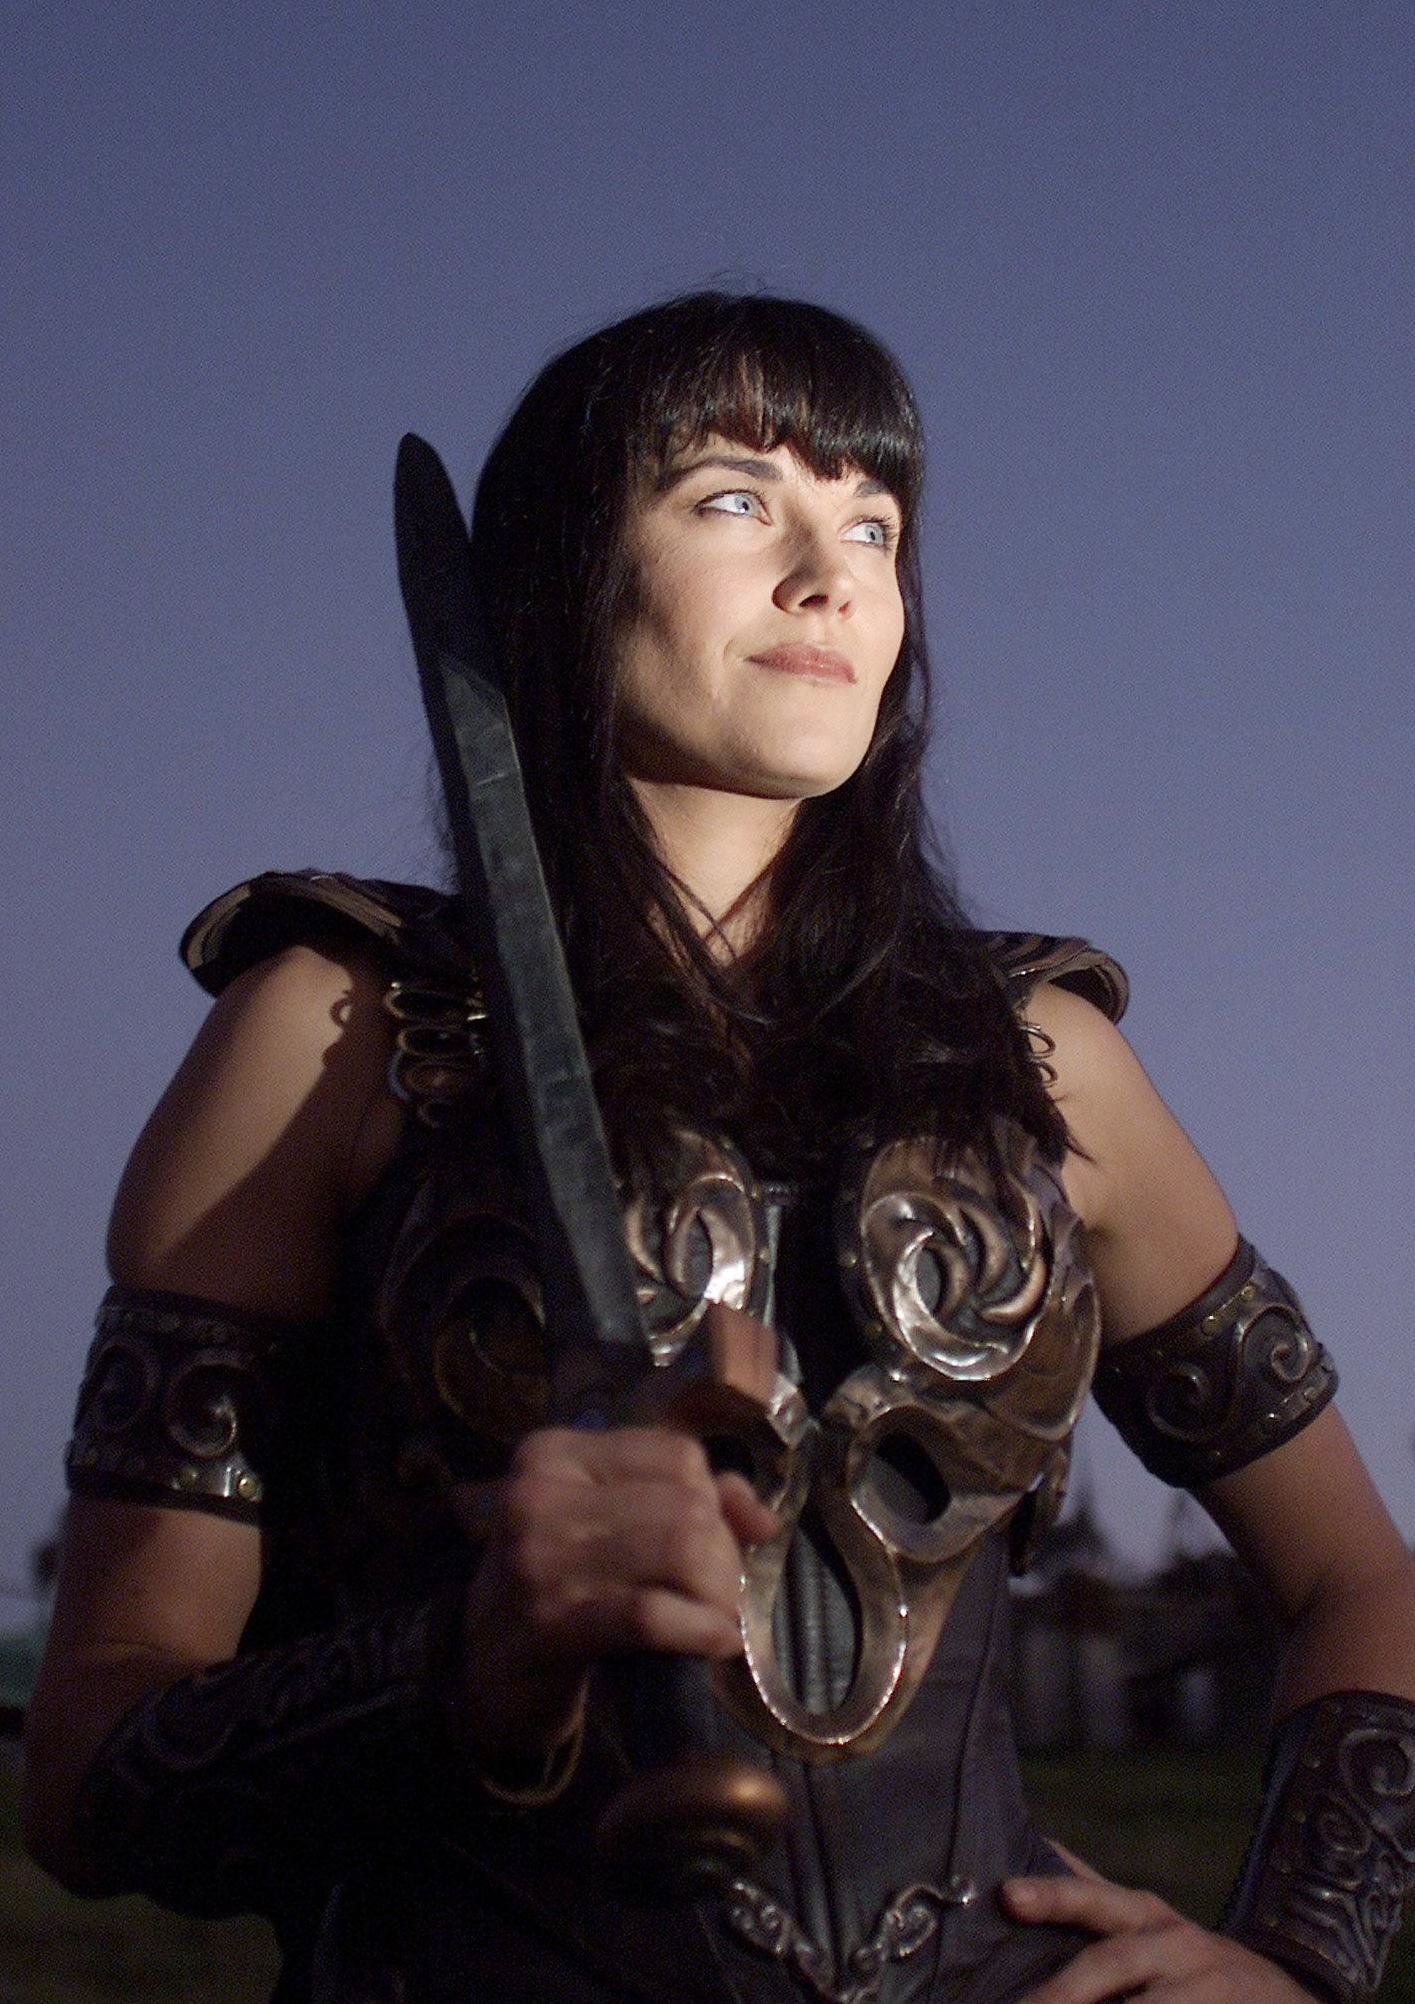 Actress Lucy Lawless playing the character